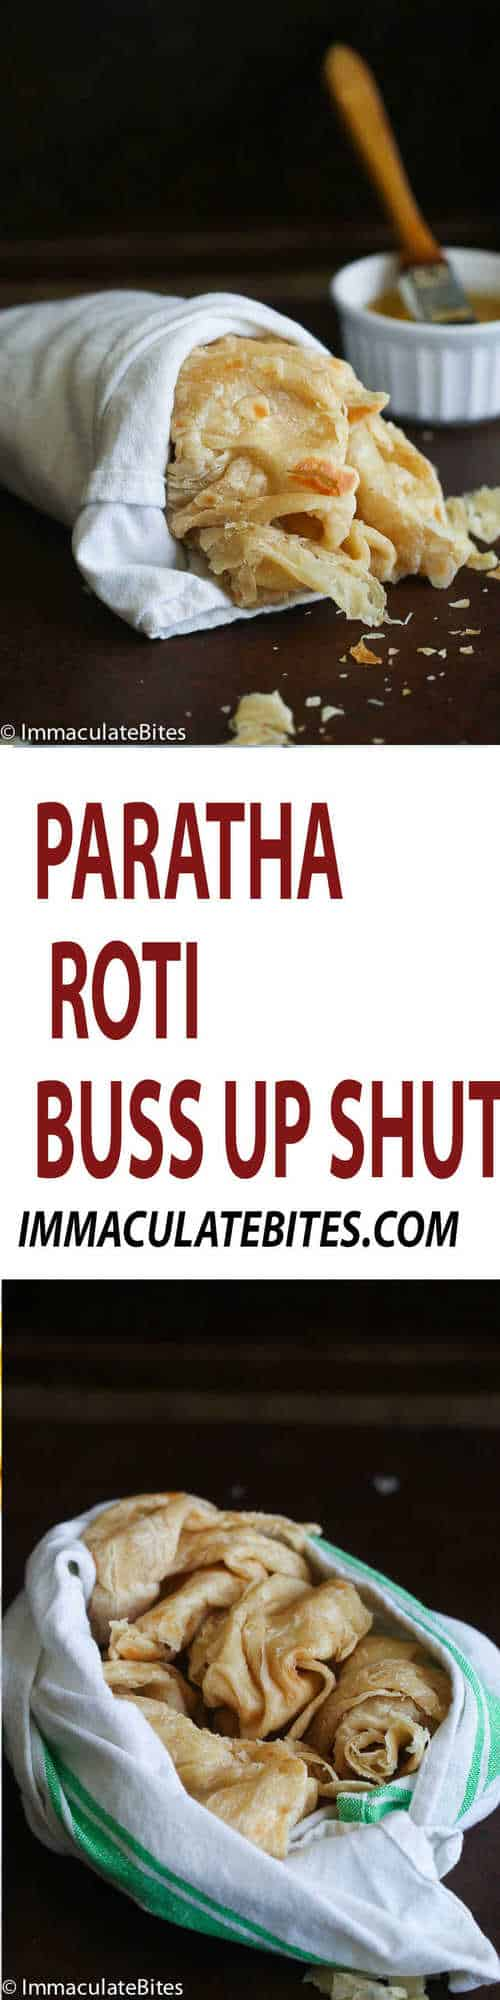 Paratha roti Buss up shut